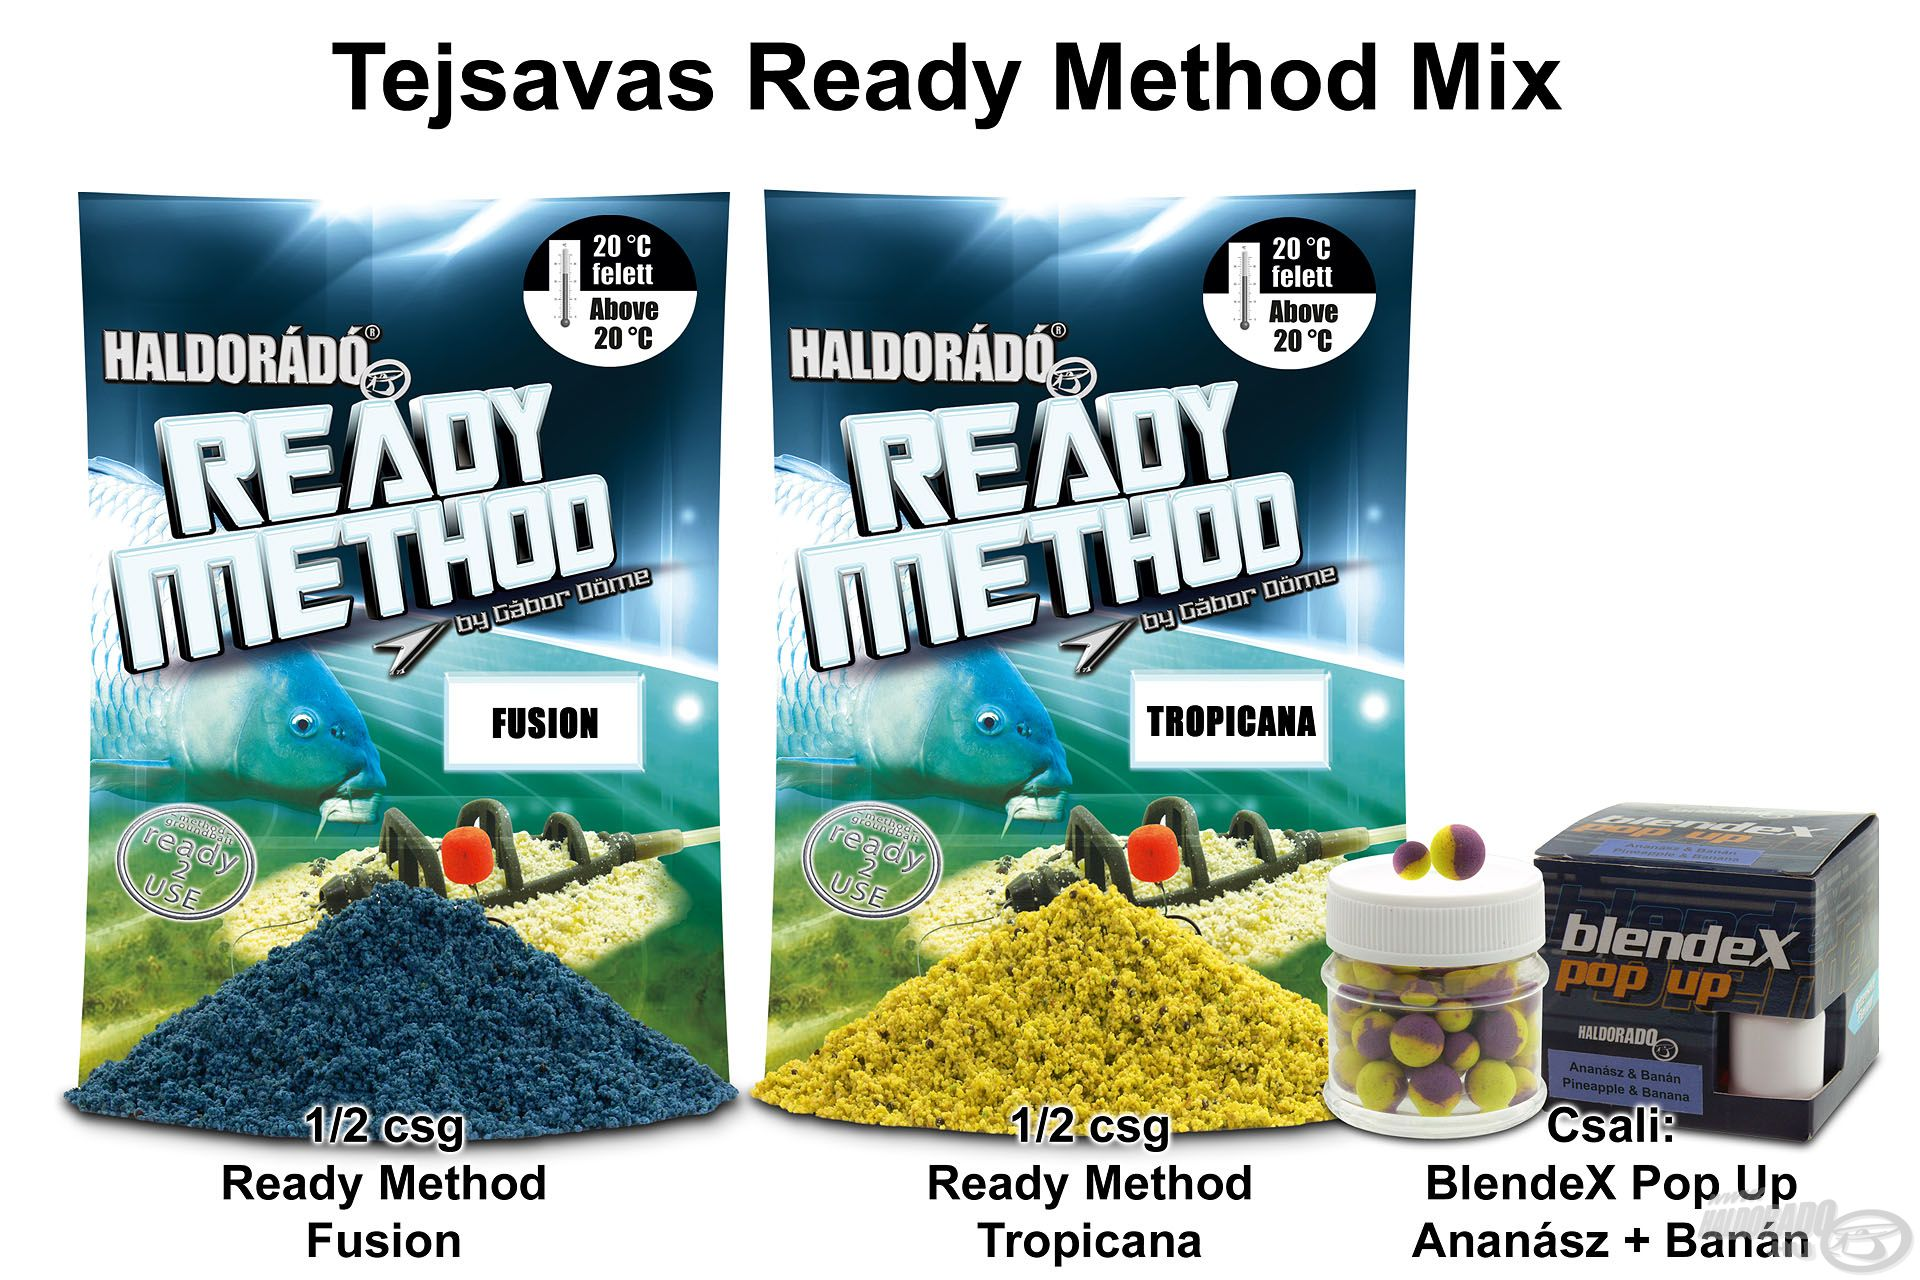 Tejsavas Ready Method Mix